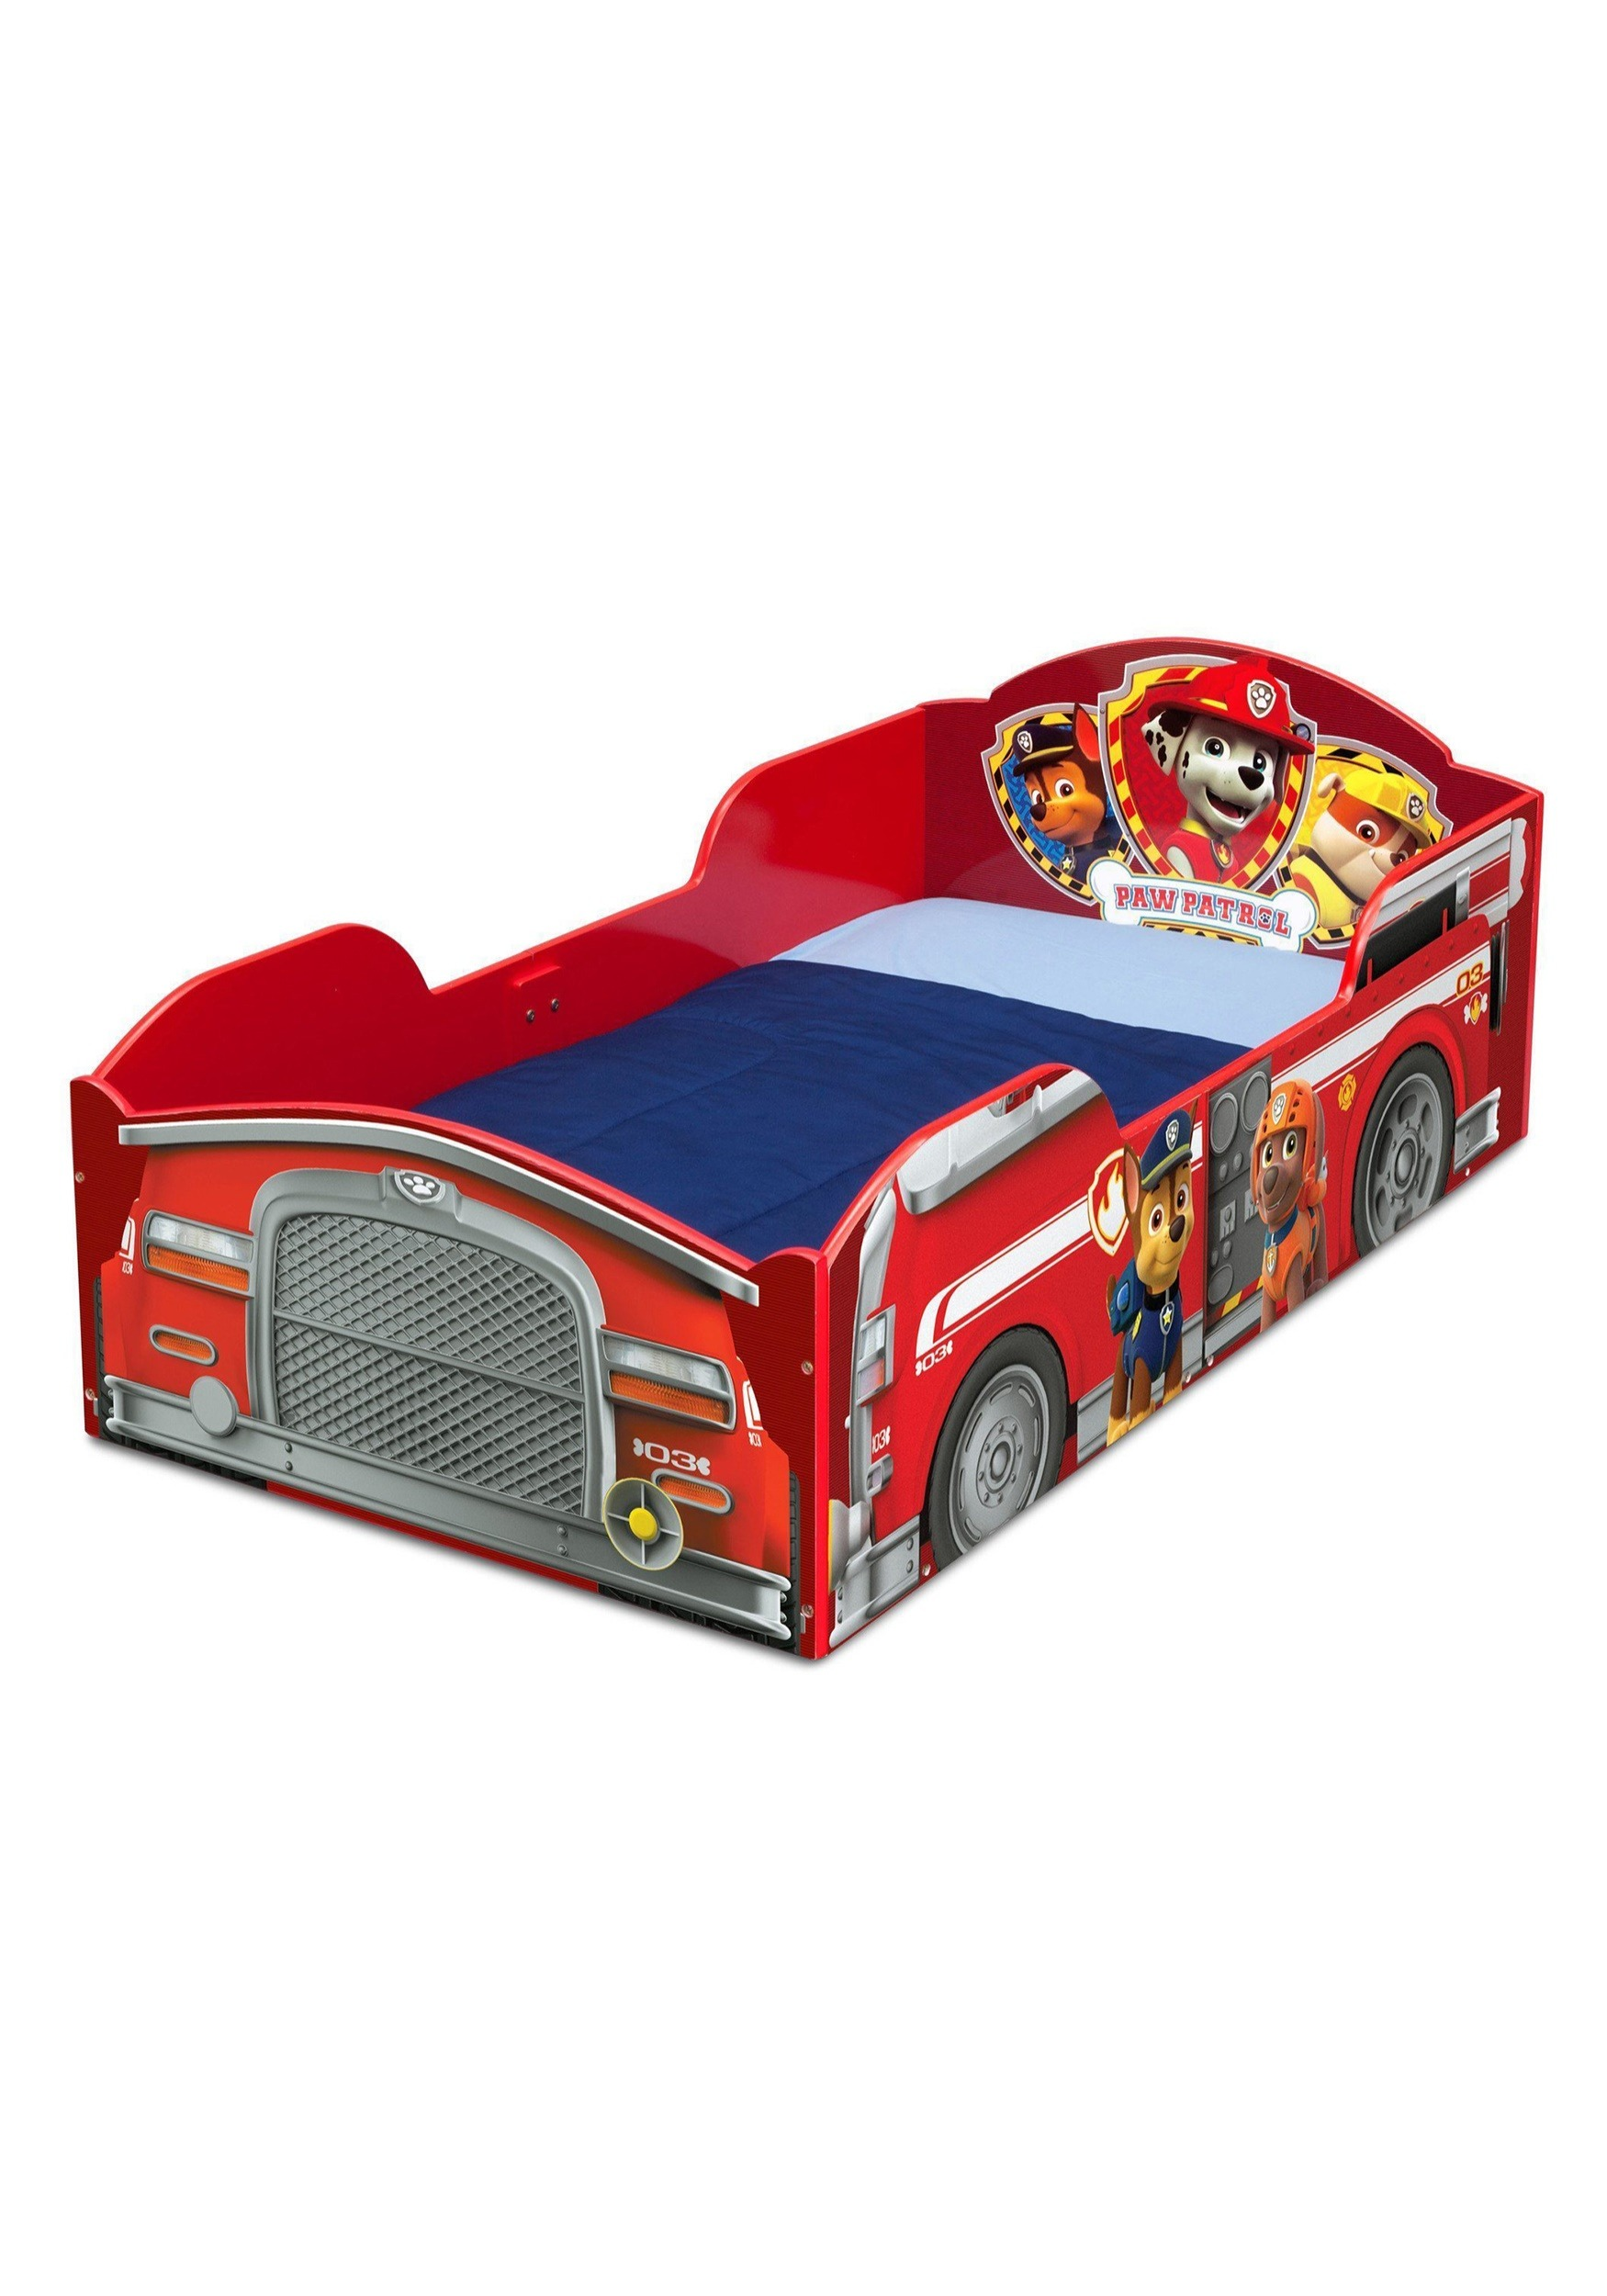 Marshall Paw Patrol Fire Truck Wood Bed